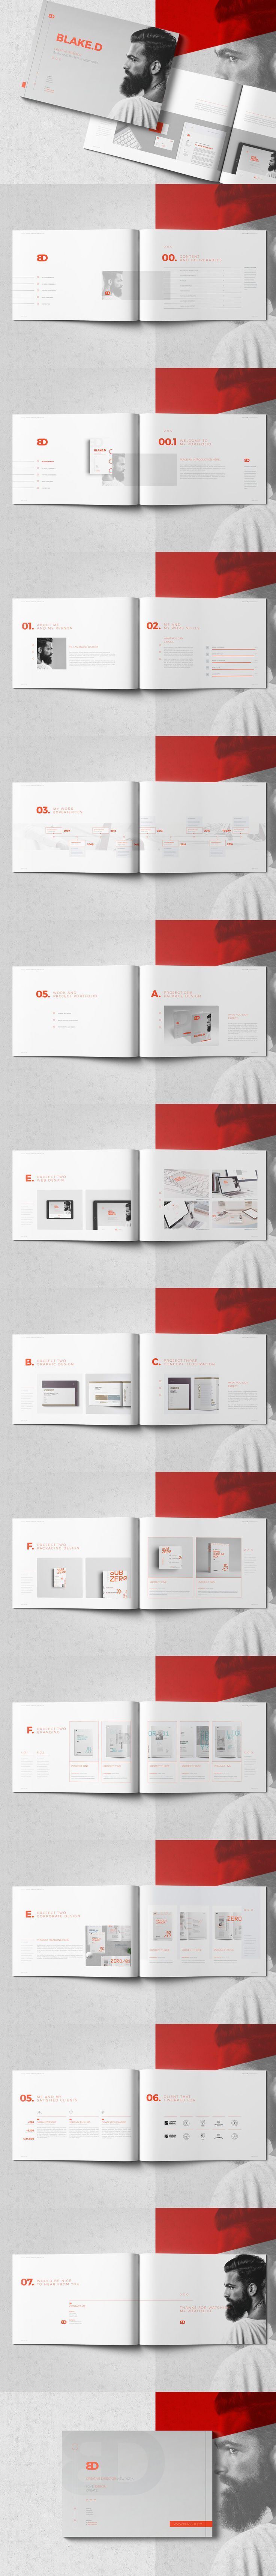 Packaging Designer Cover Letter Perils Word Table Templates Free